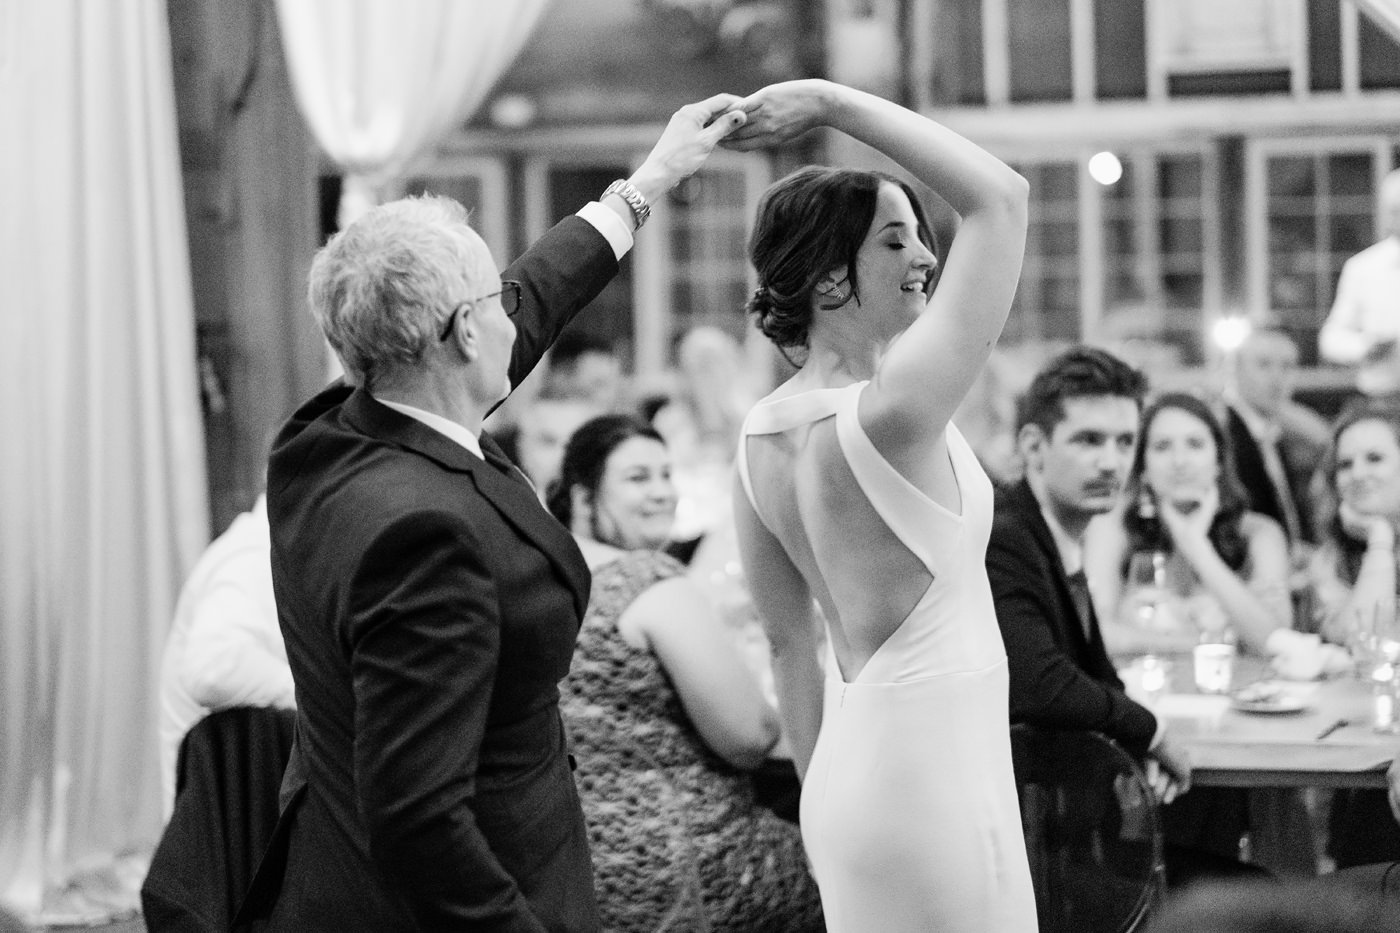 086-documentary--style-indoor-wedding-photos-at-sodo-park-by-herban-feast.jpg